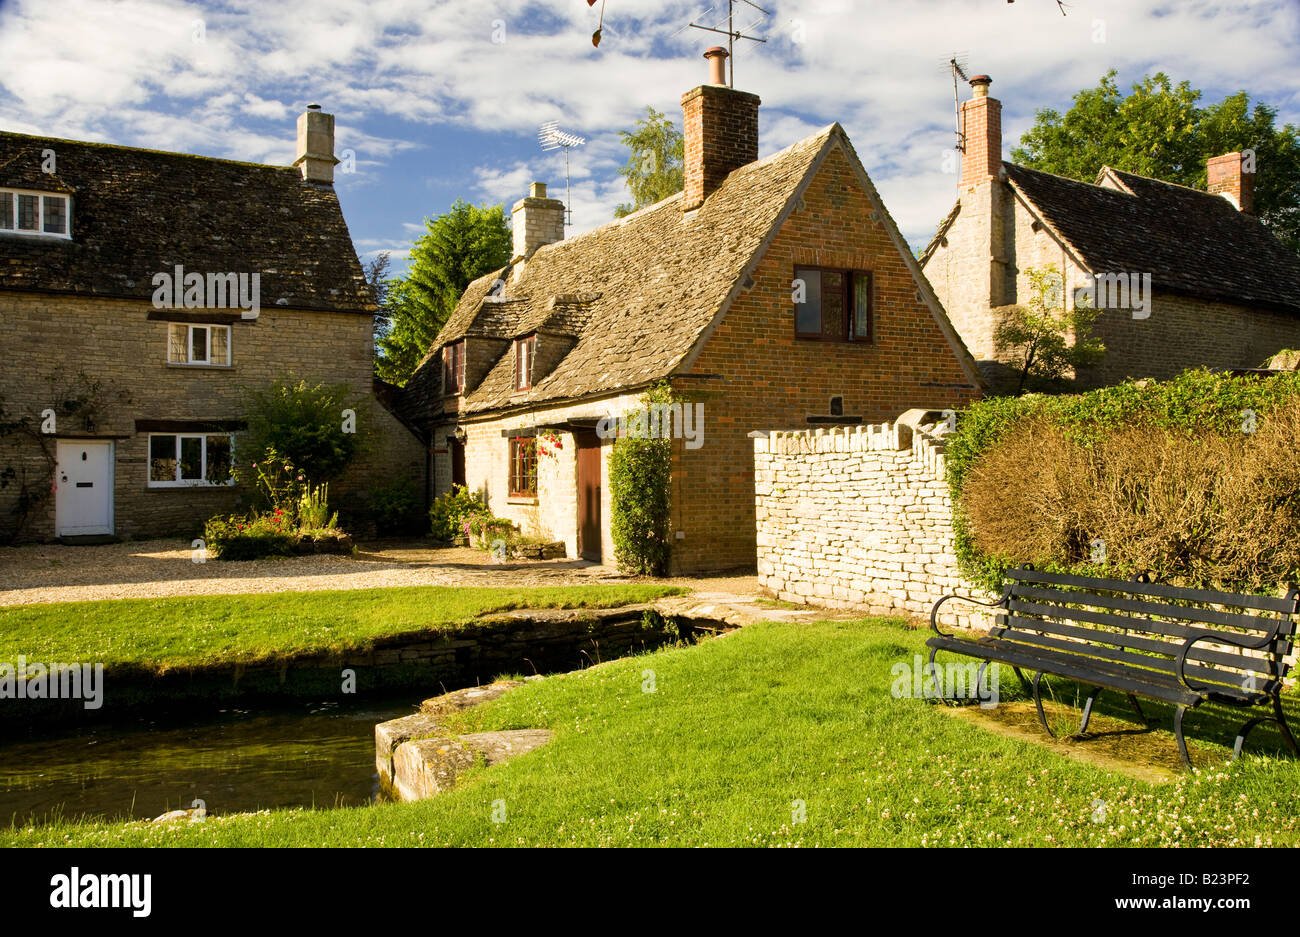 Cotswold stone country village houses by millstream in Church Walk, Ashton Keynes, Wiltshire, England, UK - Stock Image